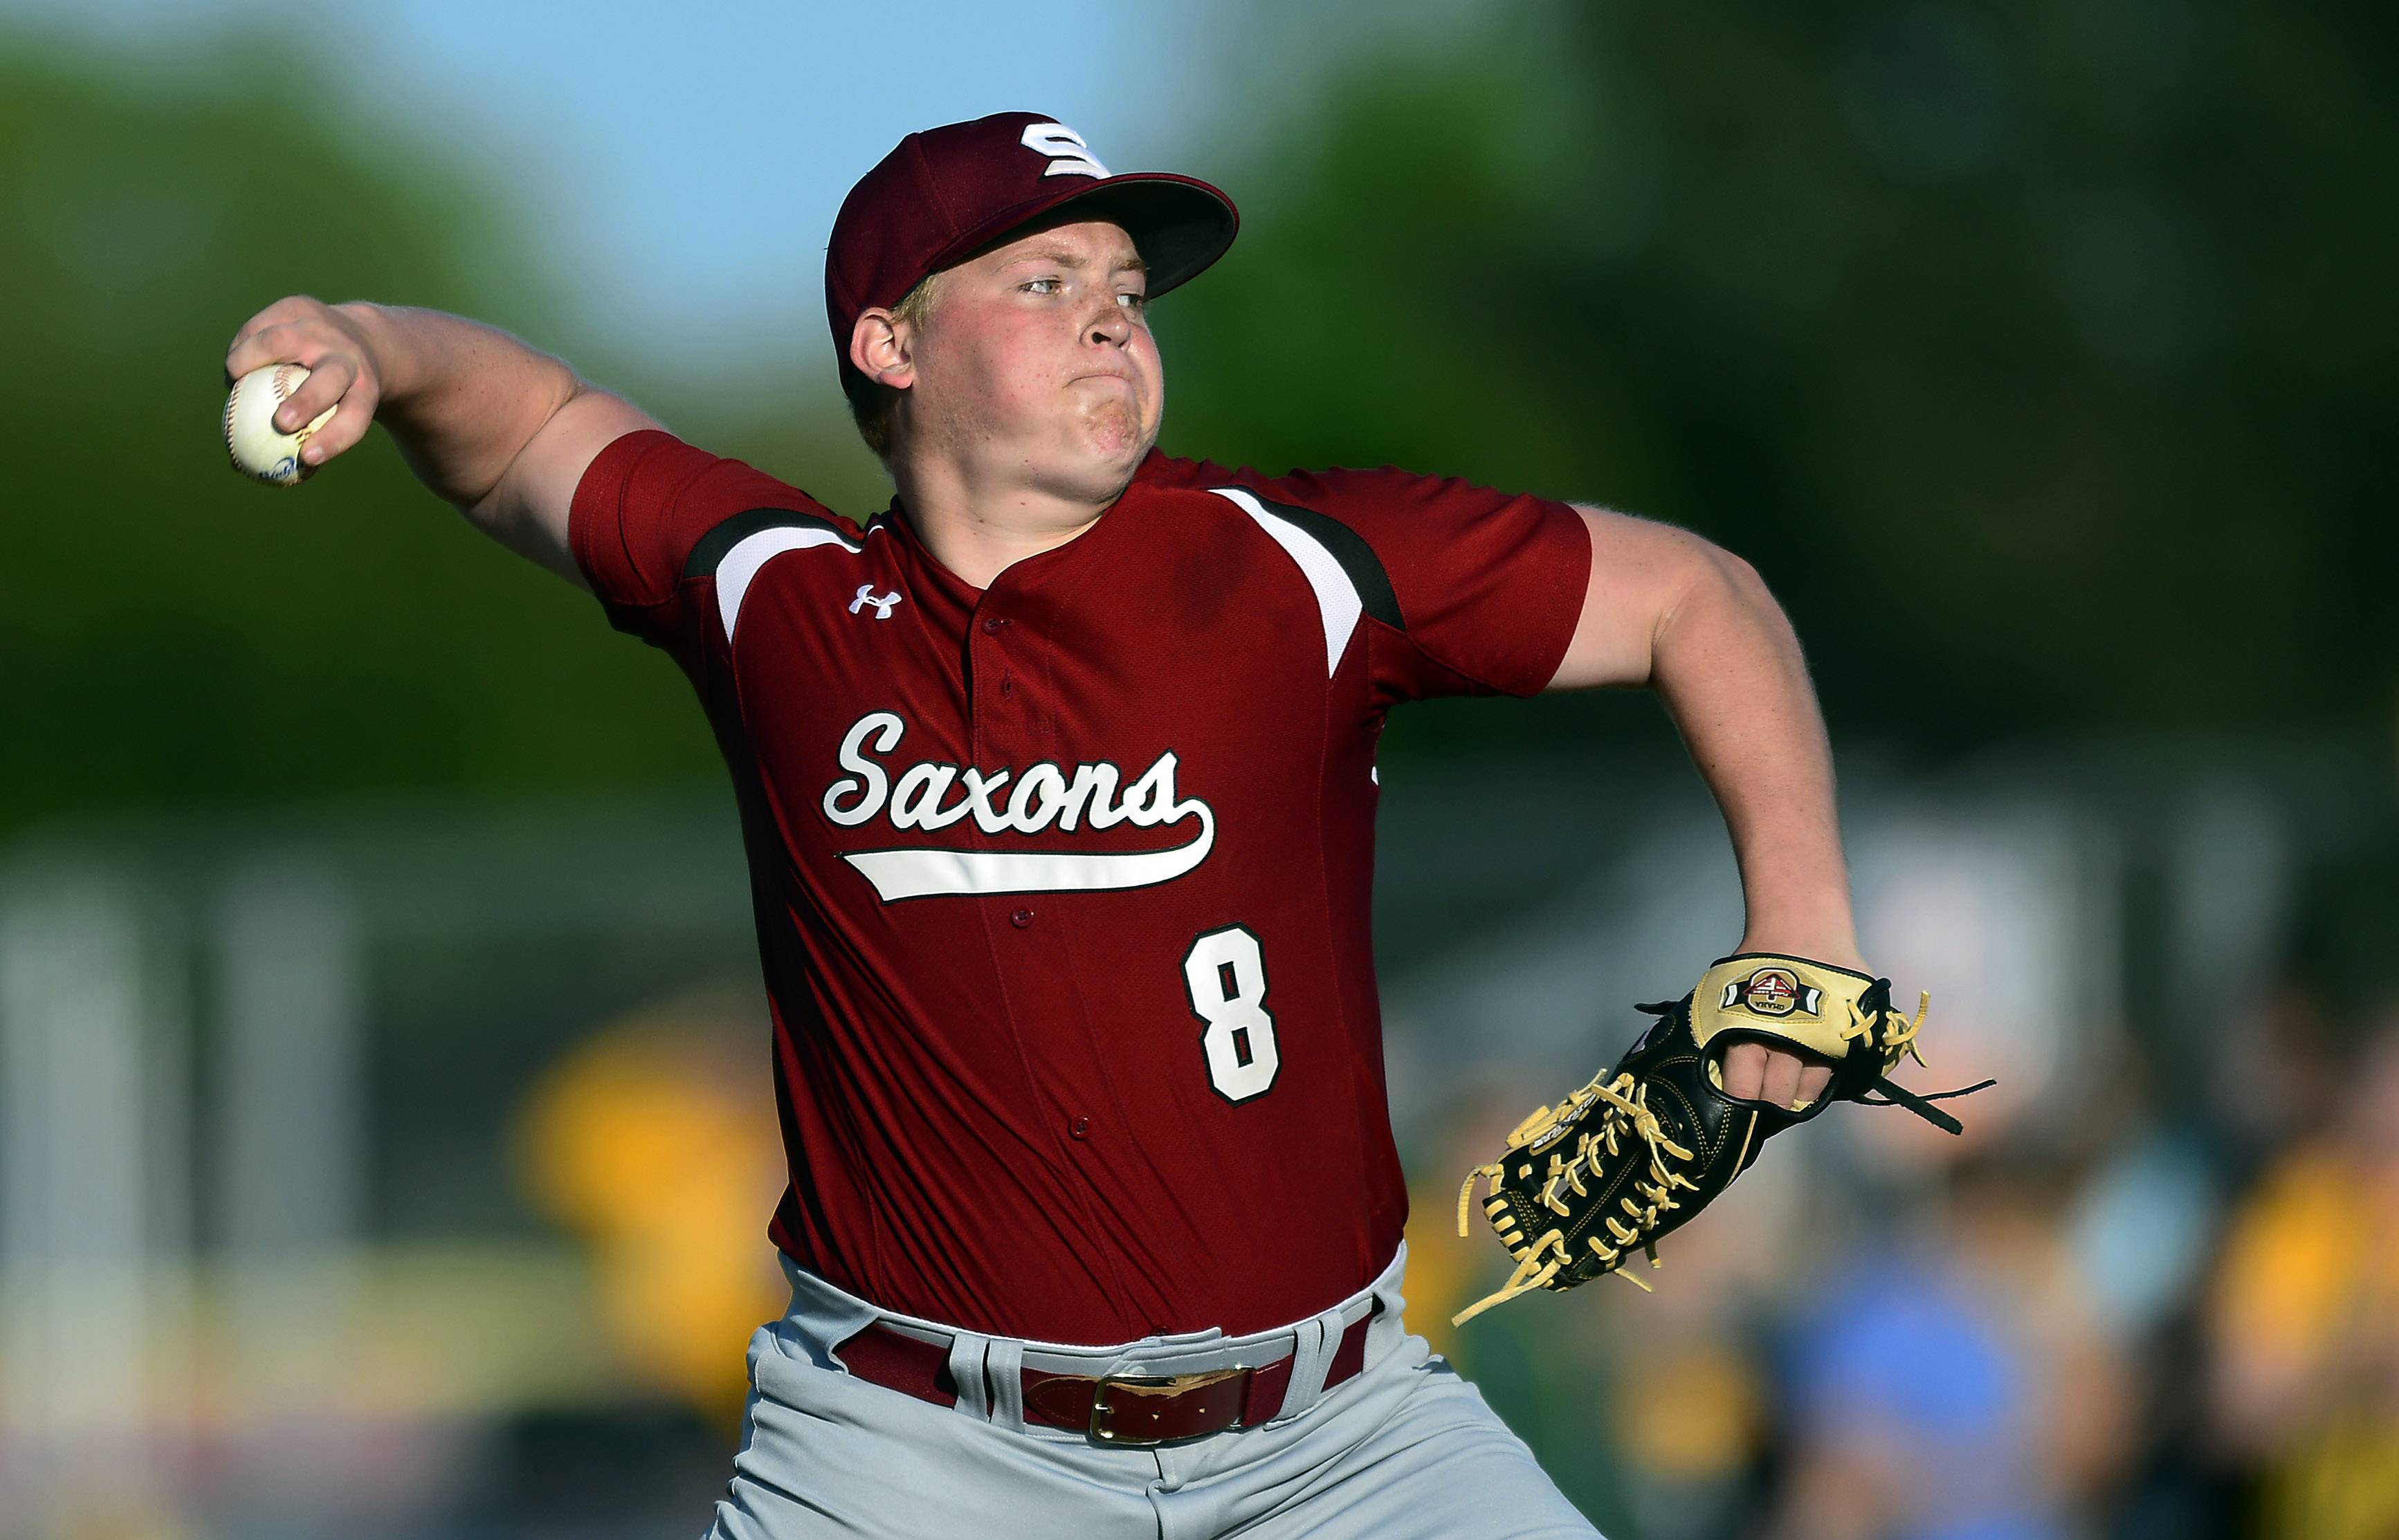 Schaumburg's pitcher Brendan Beck had a good pitching outing against Elk Grove in Friday's Mid-Suburban League championship game.